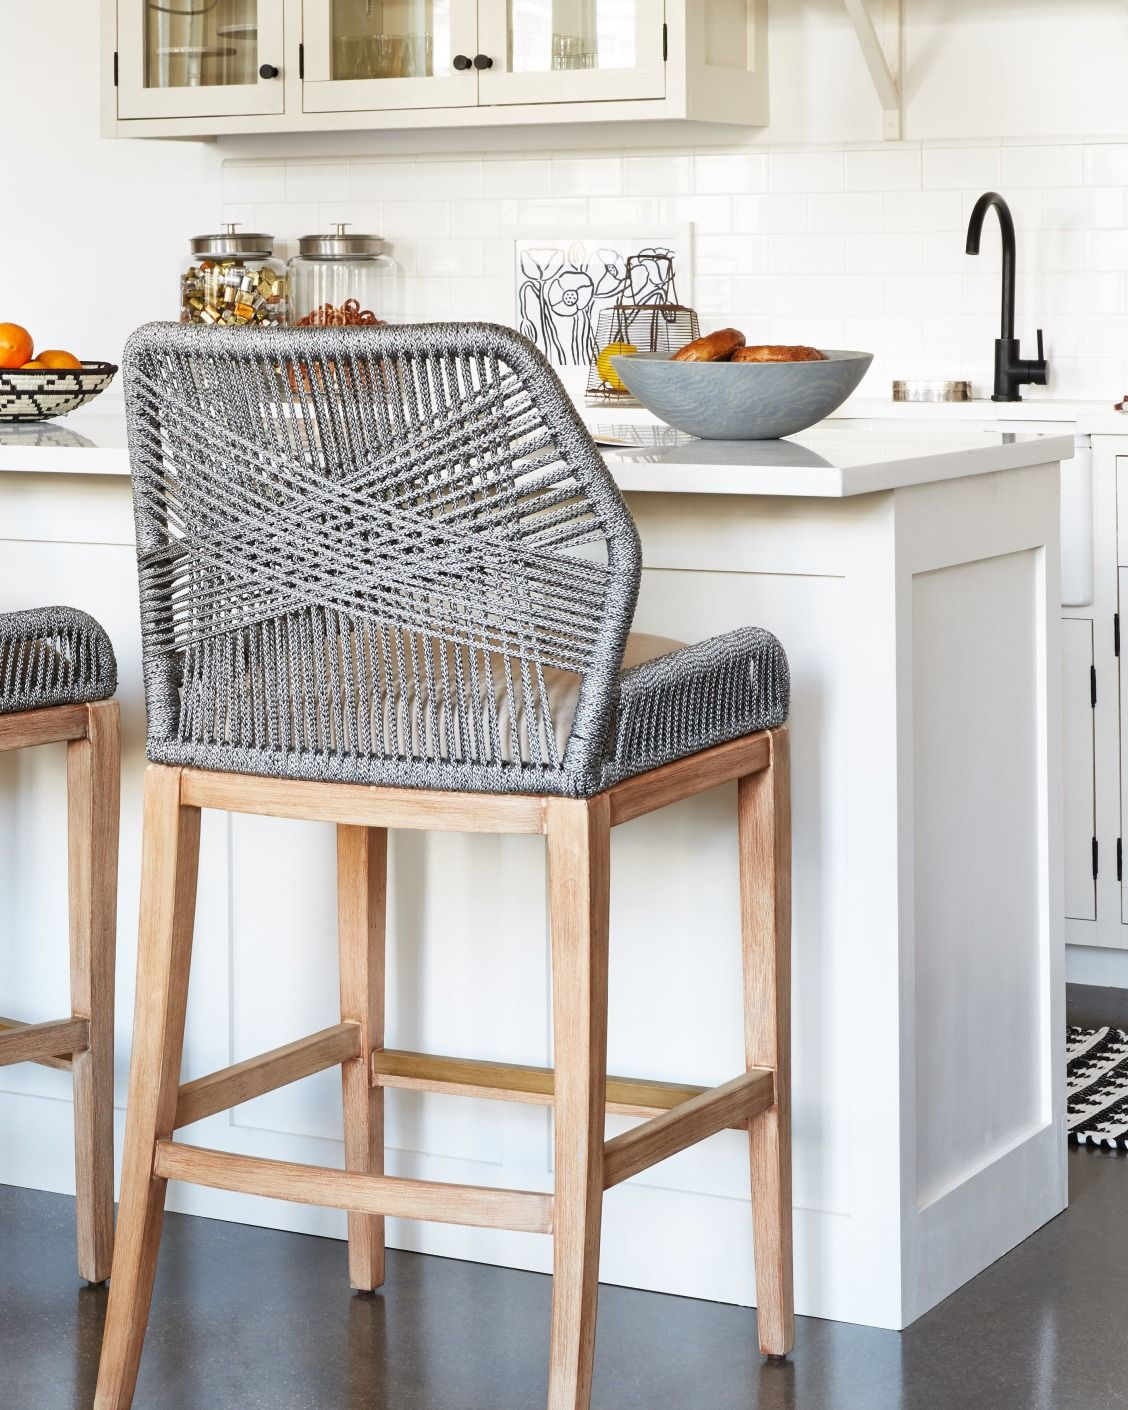 These woven rope counter stools are such a fun unexpected kitchen accent